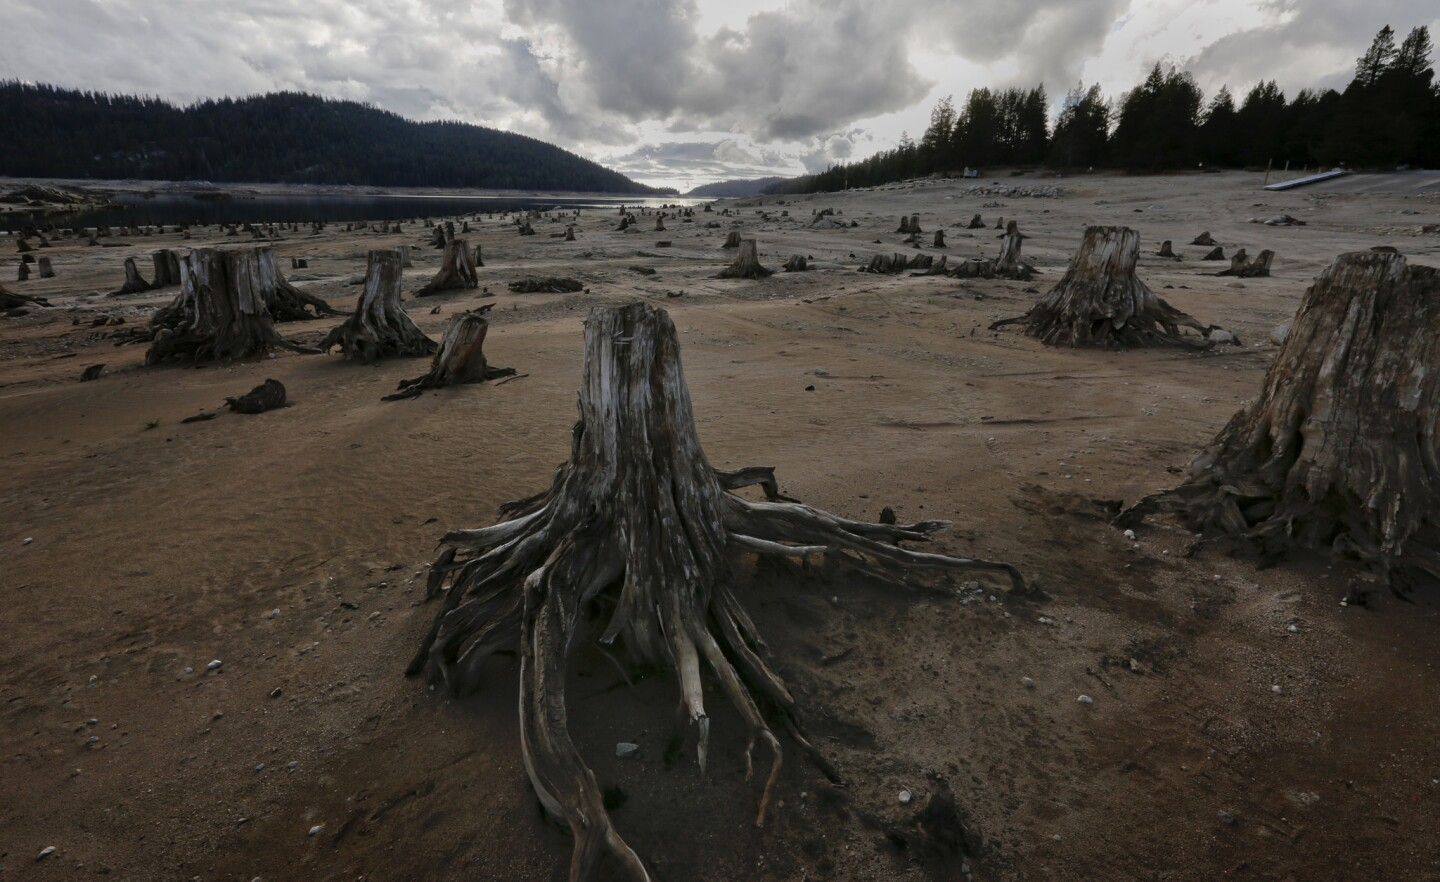 As Huntington Lake recedes, tree stumps are left exposed. The reservoir is part of the San Joaquin River watershed.